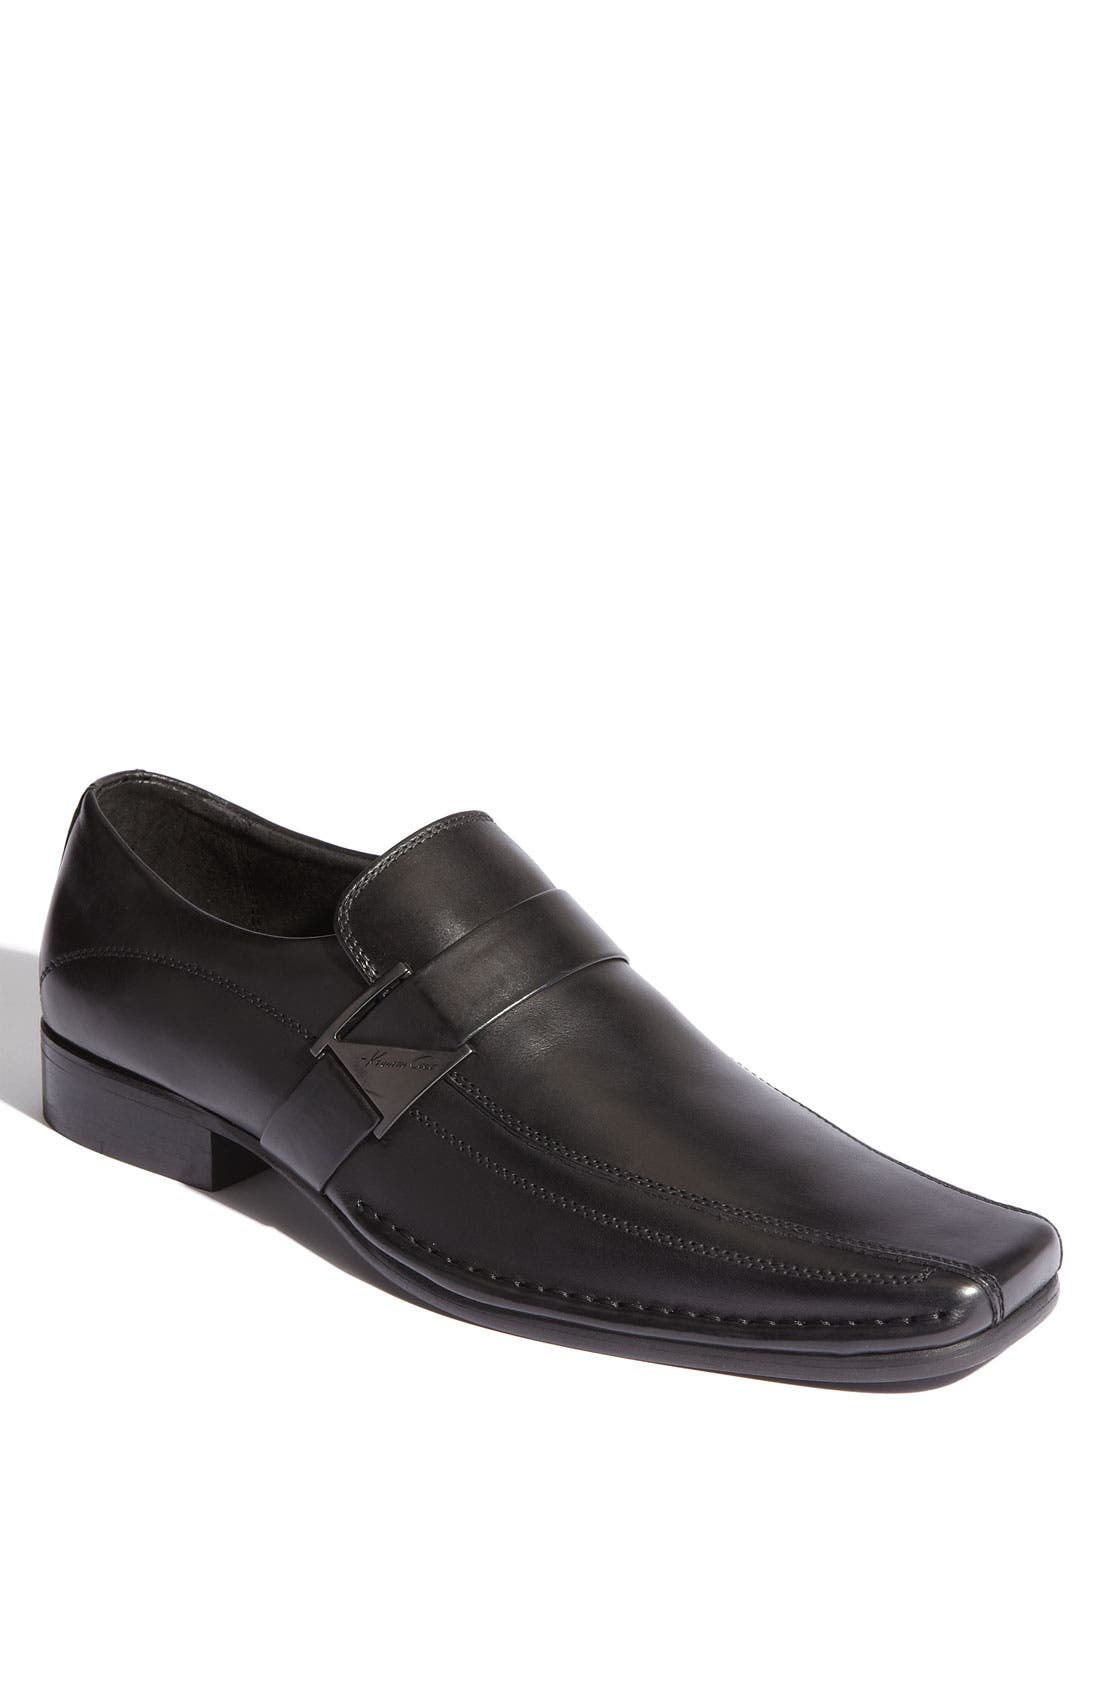 Alternate Image 1 Selected - Kenneth Cole New York 'Run Around' Slip-On